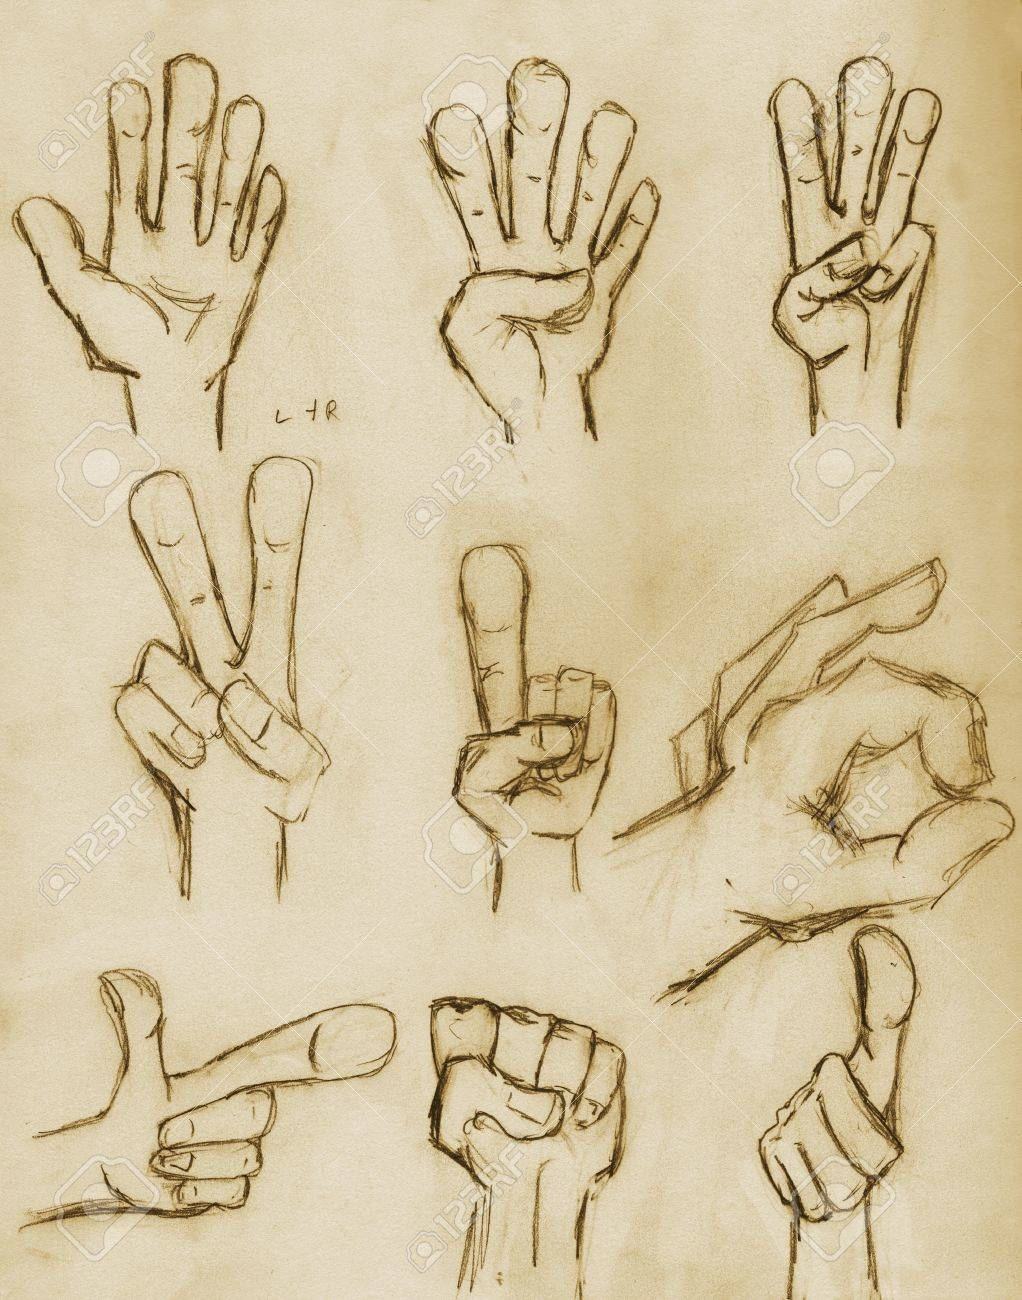 Hands sketched in pencil on vintage paper with sepia tone Stock Photo - 16403631